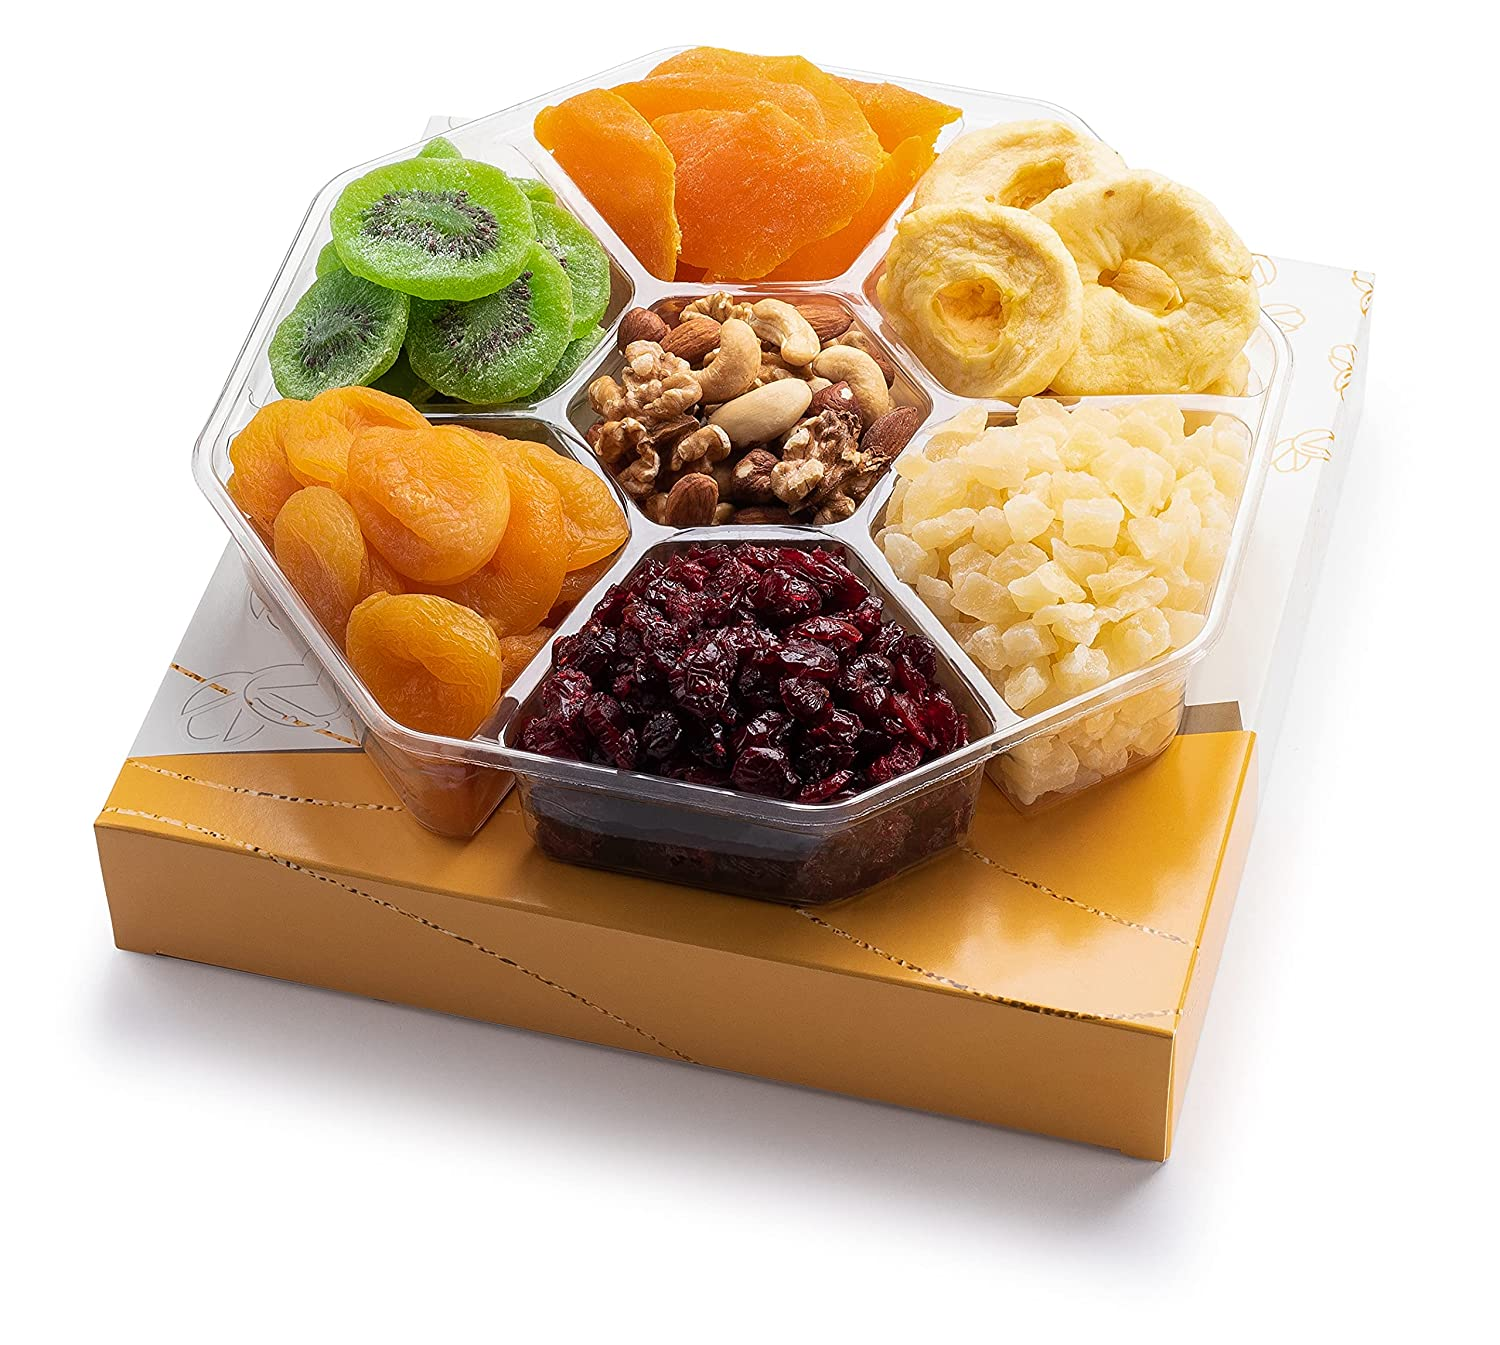 Gourmet Dried Fruit & Nut Gift Basket, 7 Varieties Food Platter care Package Tray | Healthy Kosher Snack Box for Holiday, Thanksgiving, Birthday, Mothers and Fathers Day (3. Extra-Large Gift Basket)